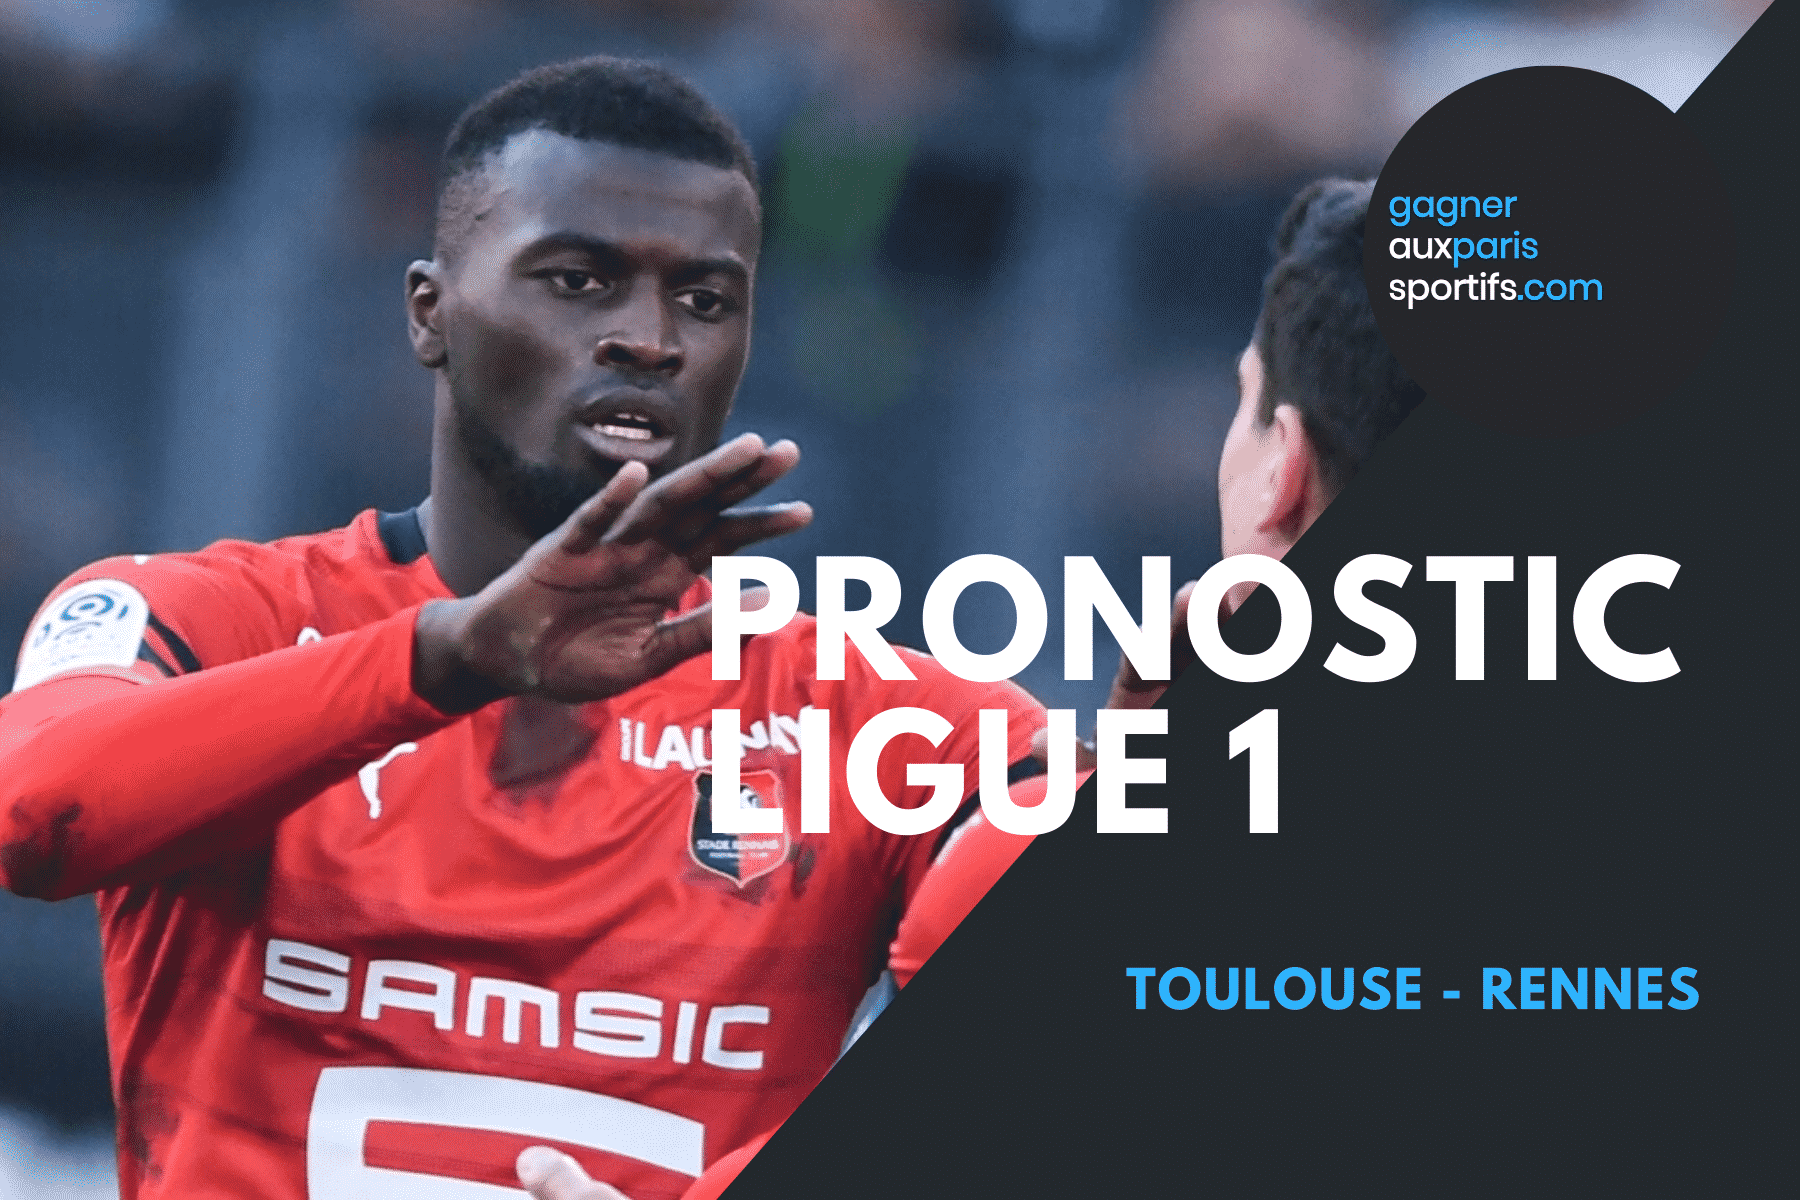 PRONOSTIC Toulouse - Rennes Ligue 1